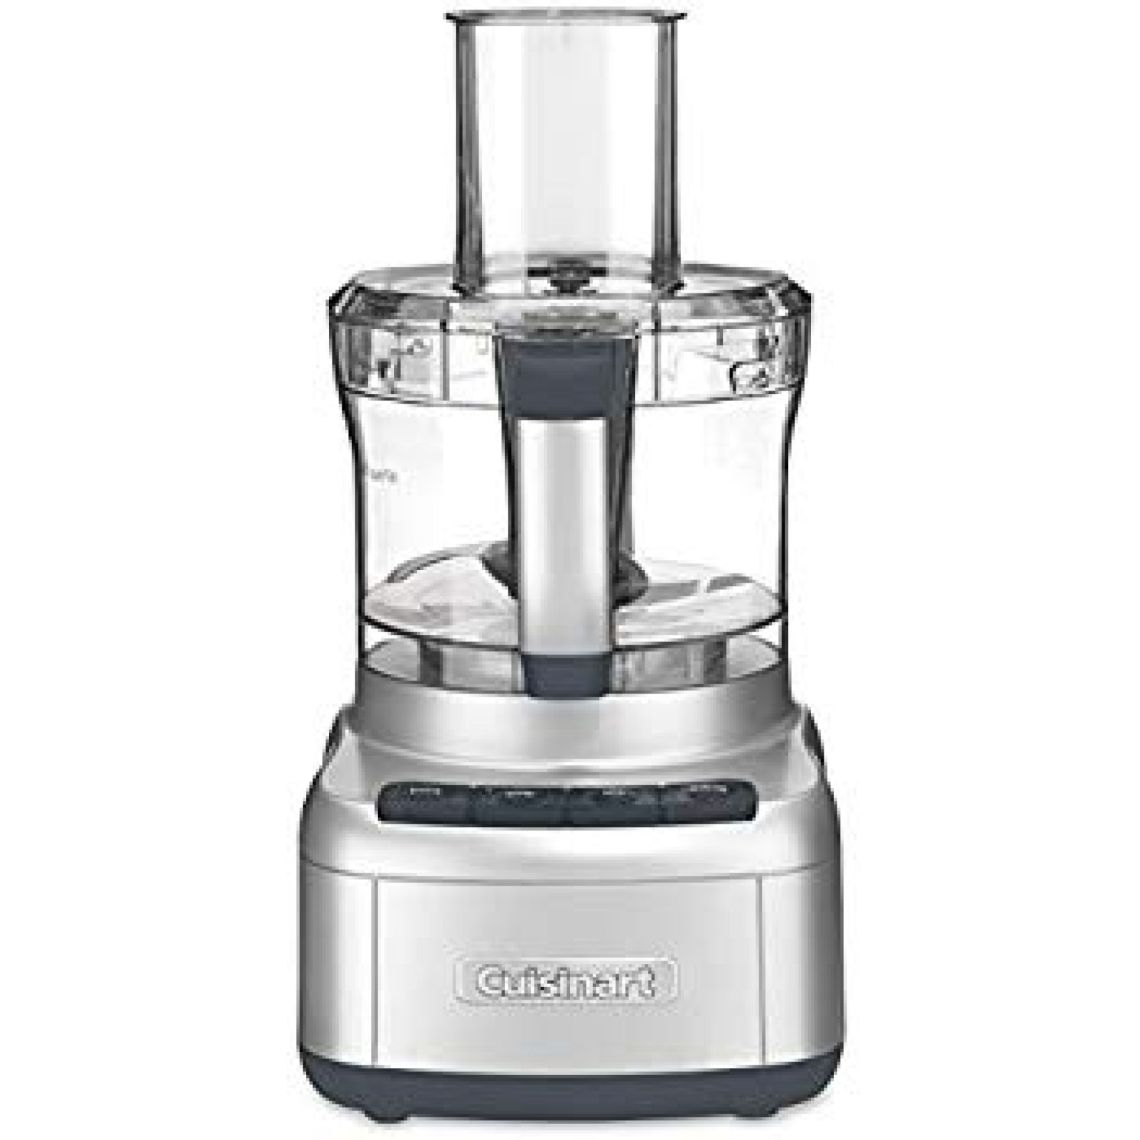 Amazon.com: Cuisinart FP-8SV Elemental 8-Cup Food Processor, Silver: Kitchen & Dining